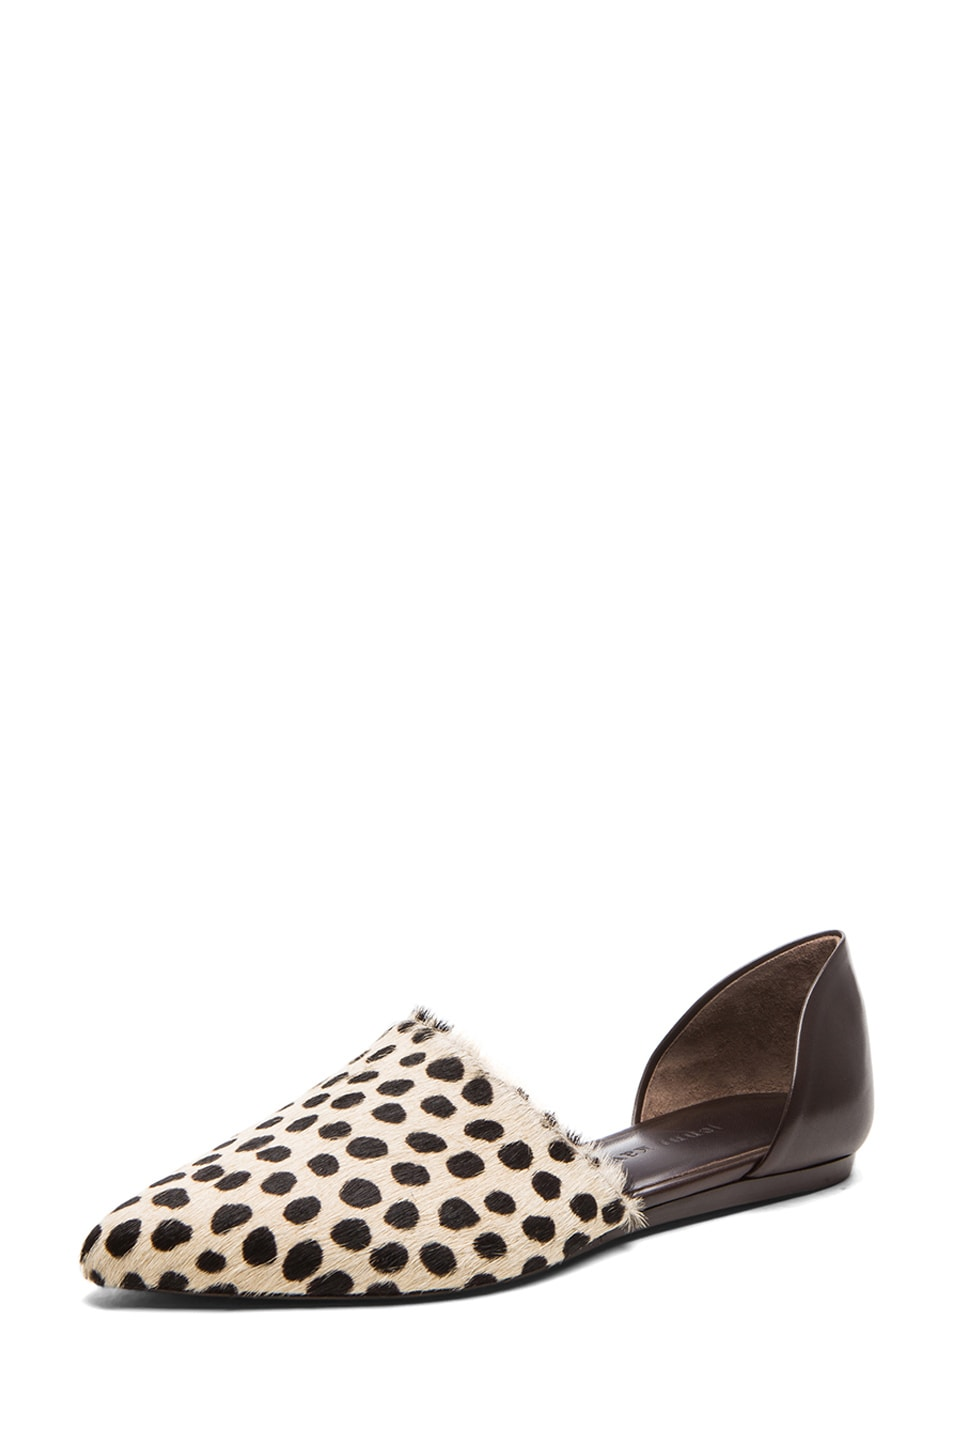 Image 2 of Jenni Kayne D'orsay Calf Hair & Leather Flats in Cheetah &